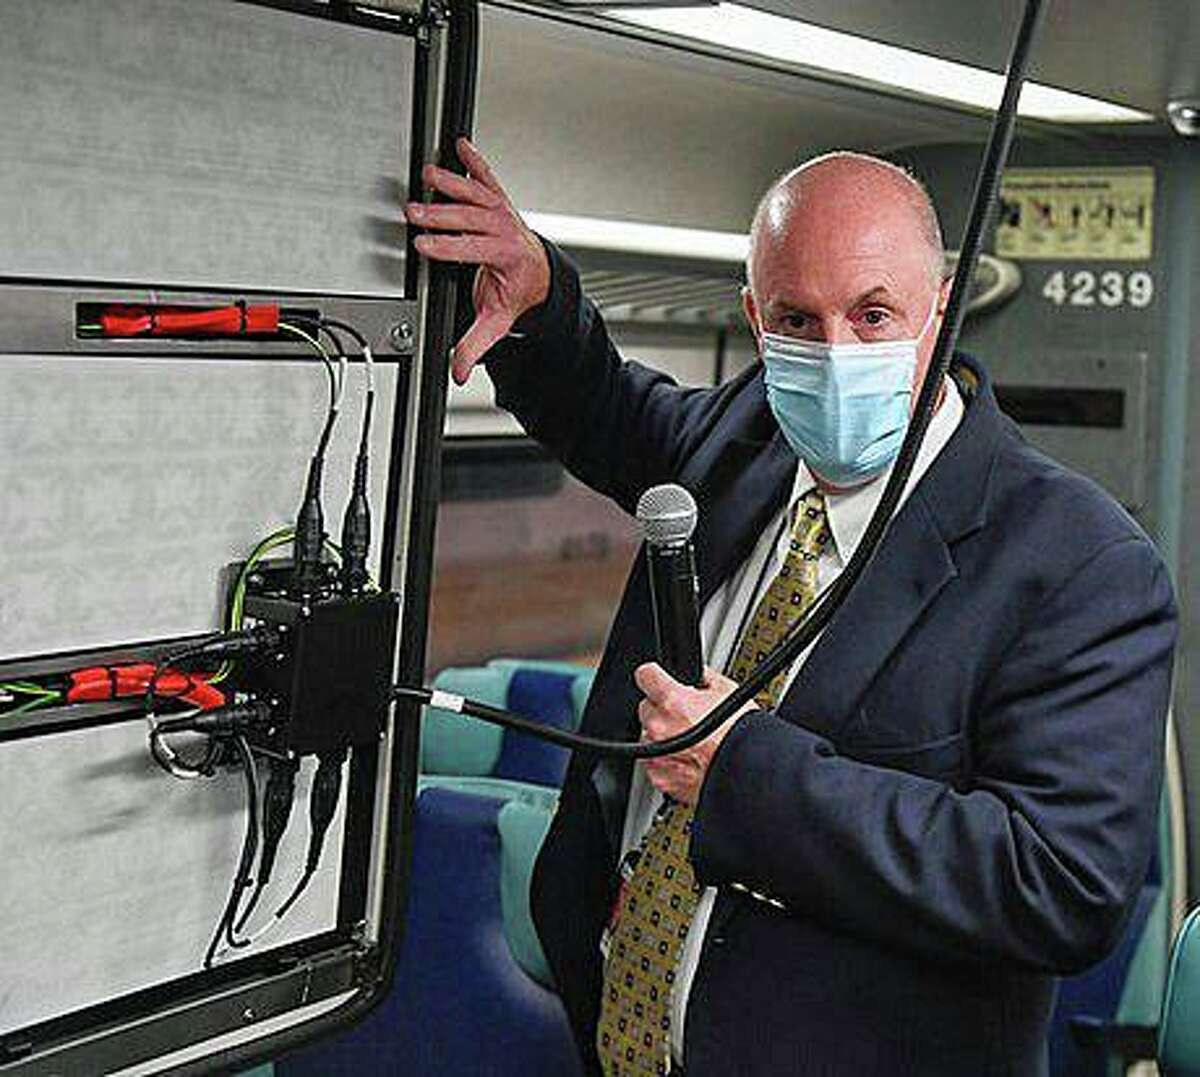 James Heimbuecher, the Metro-North's chief mechanical officer, describes a three-stage air filtration and purification system on a rail car that could kill not only the coronavirus, but nearly all airborne viruses, bacteria and particulates. The railroad announced a pilot program for testing the system on Thursday, Oct. 15, 2020.